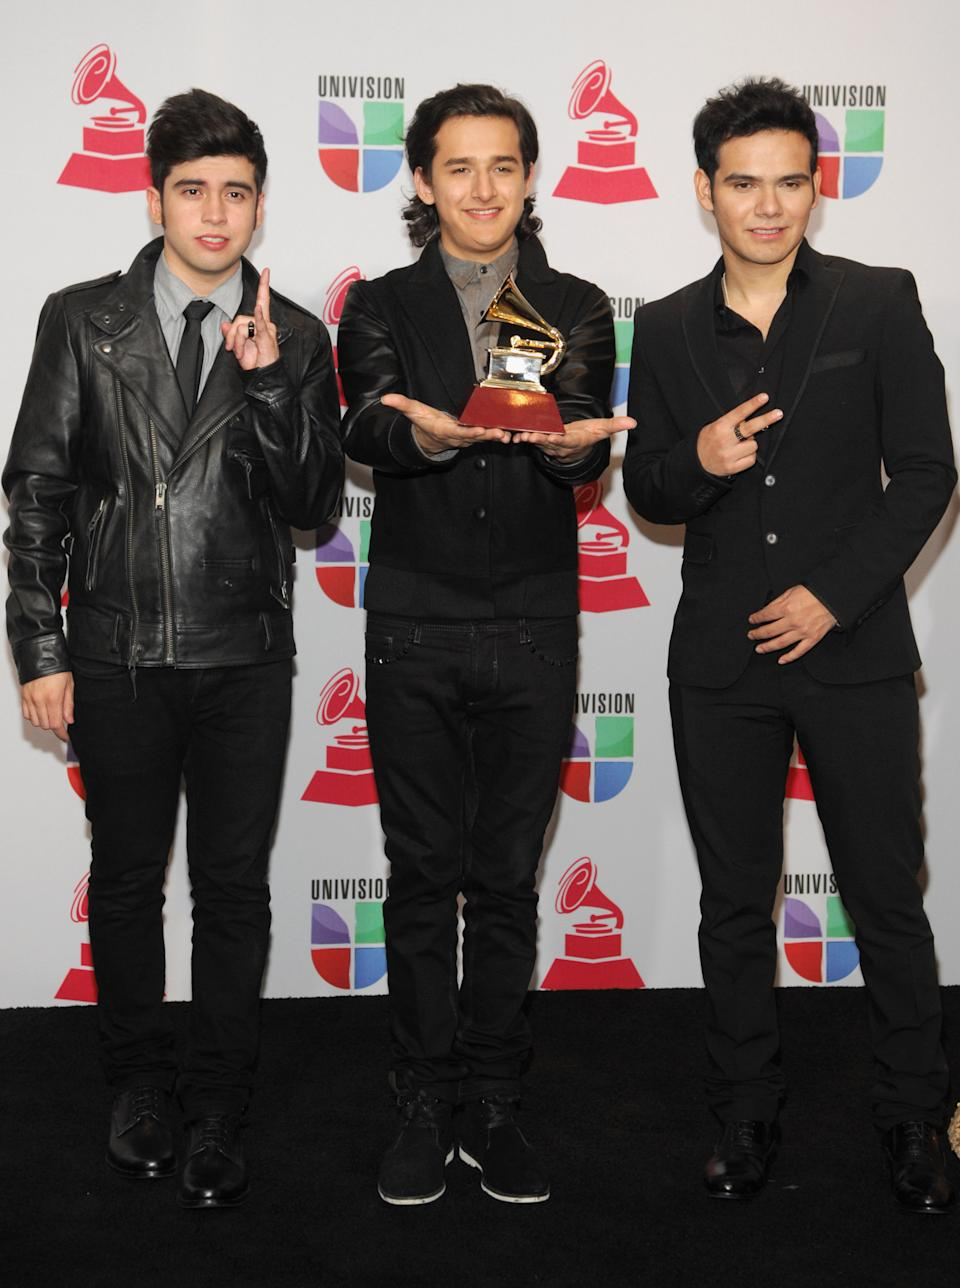 Musical group 3Ball MTY pose backstage with the best new artist award at the 13th Annual Latin Grammy Awards at Mandalay Bay on Thursday, Nov. 15, 2012, in Las Vegas. (Photo by Brenton Ho/Powers Imagery/Invision/AP)